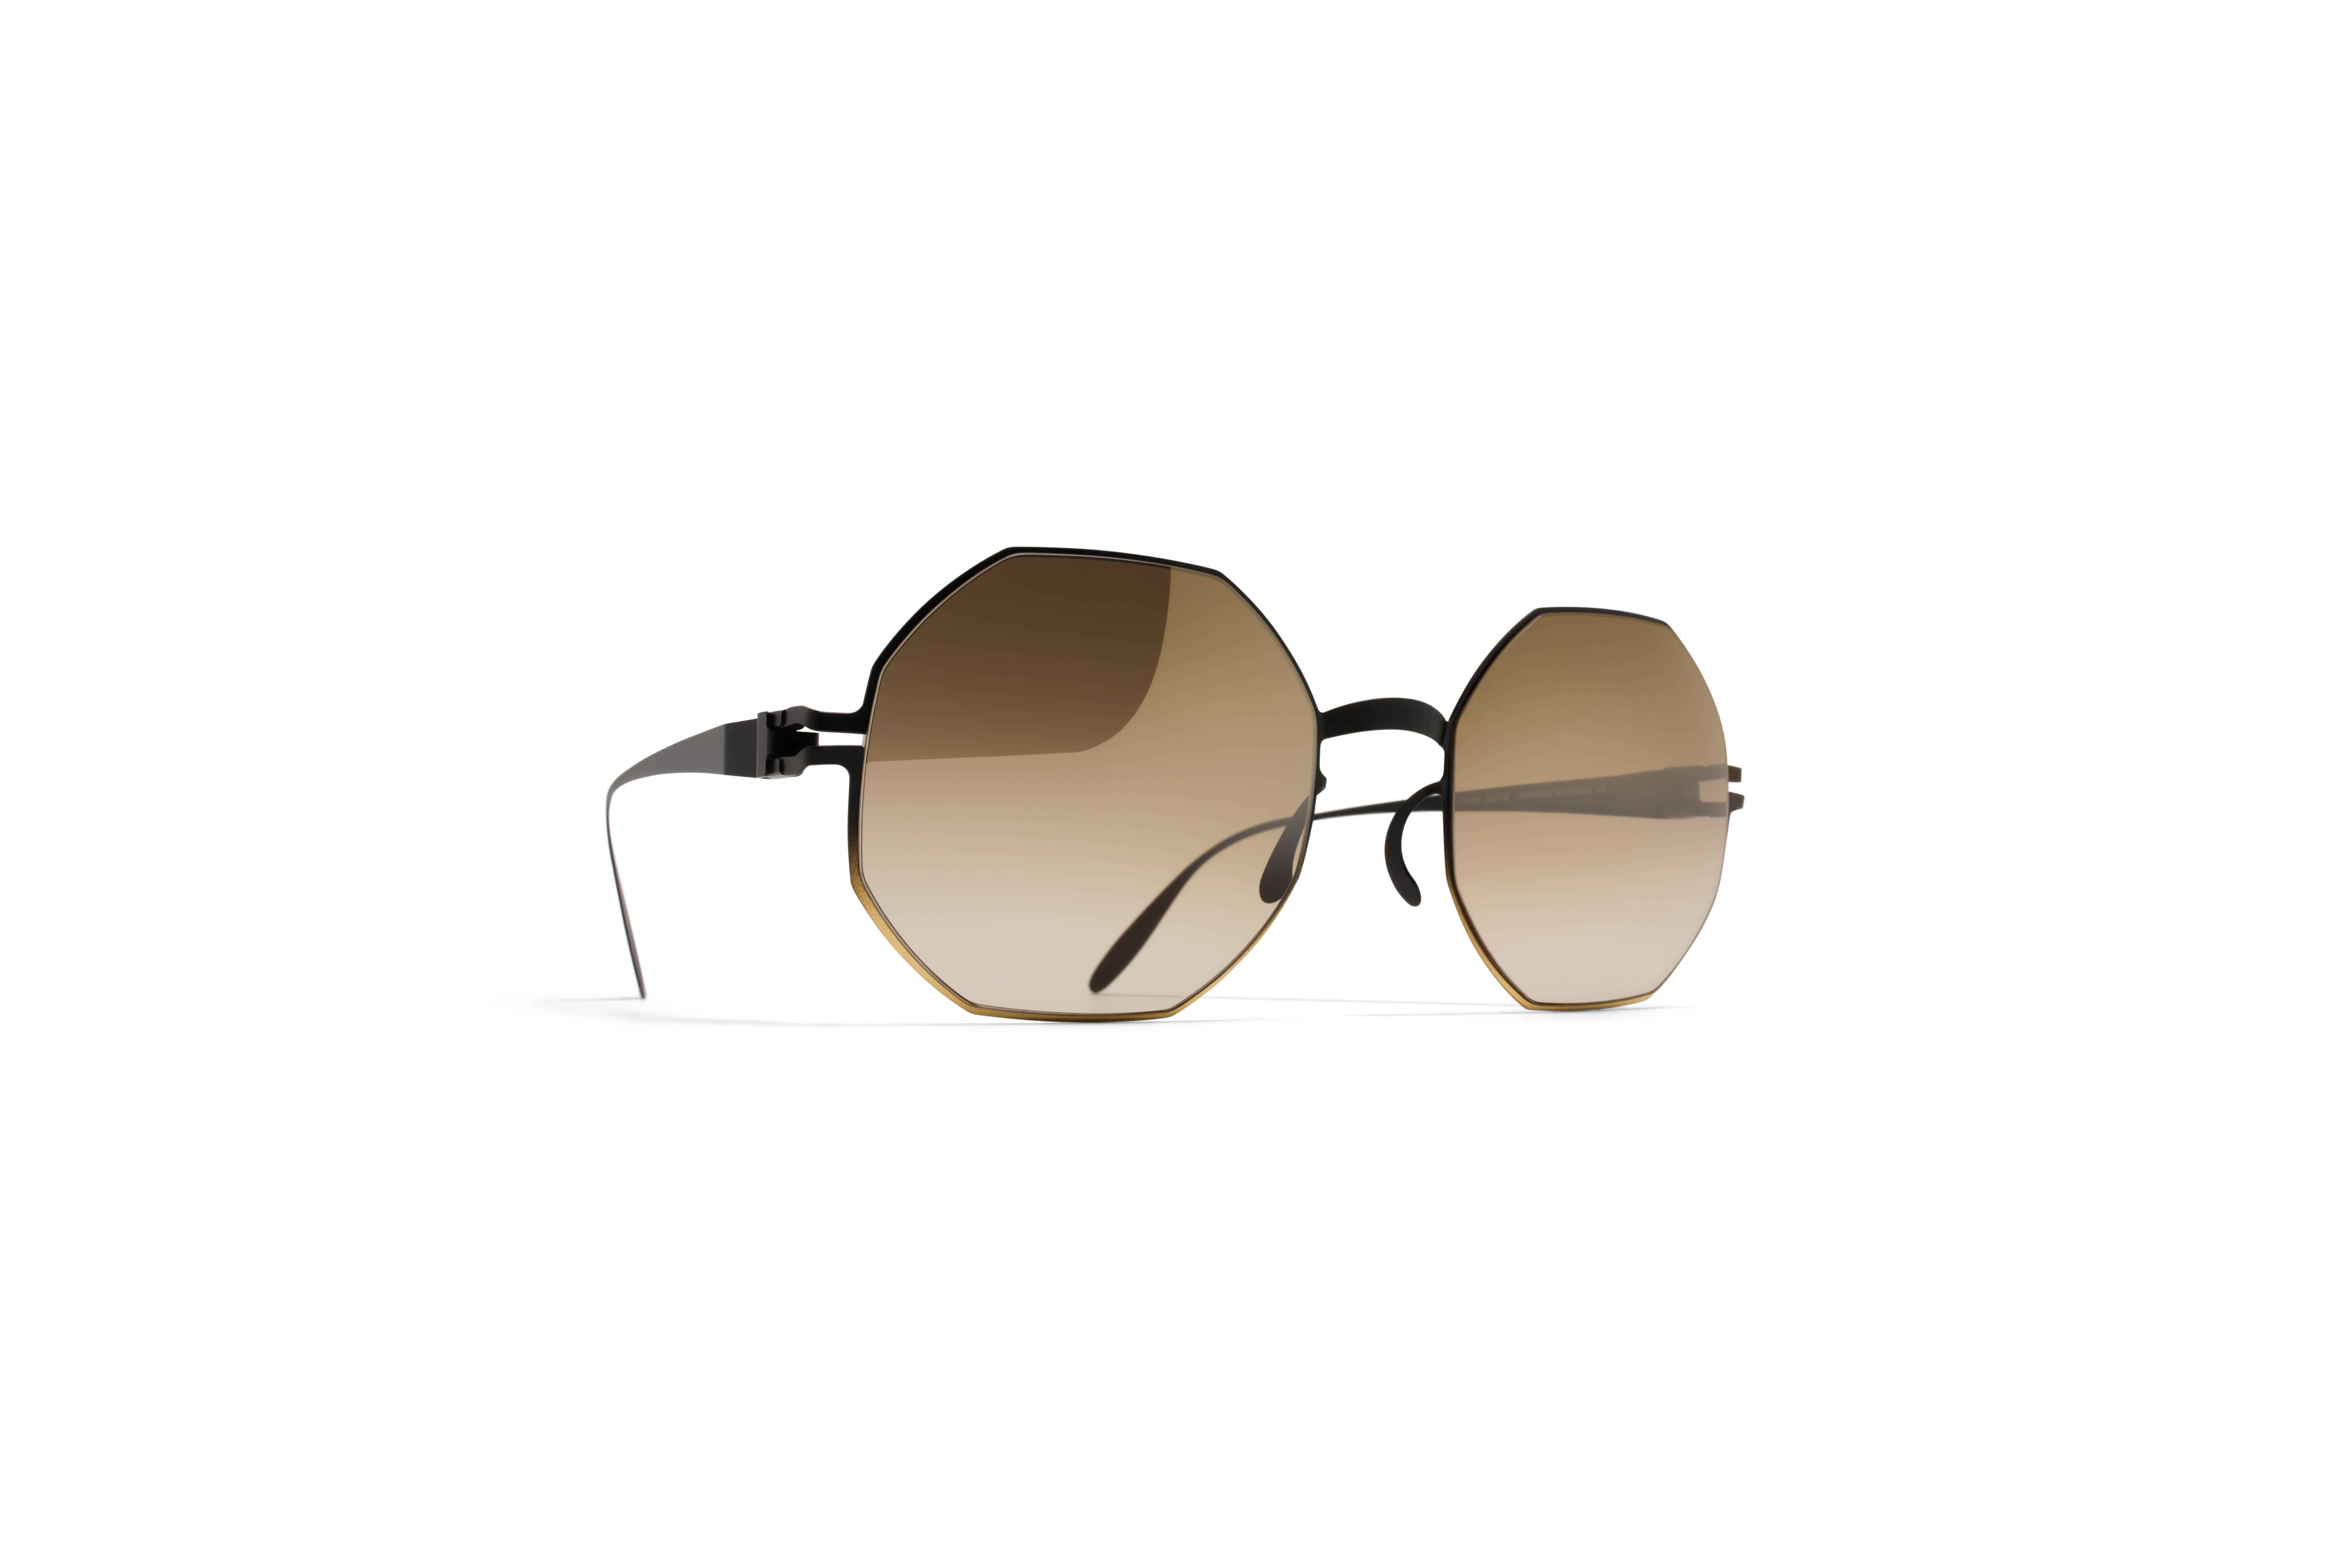 MYKITA Bw Sun Ursula F67 Black Gold Brown Gradient58a452b5b9511